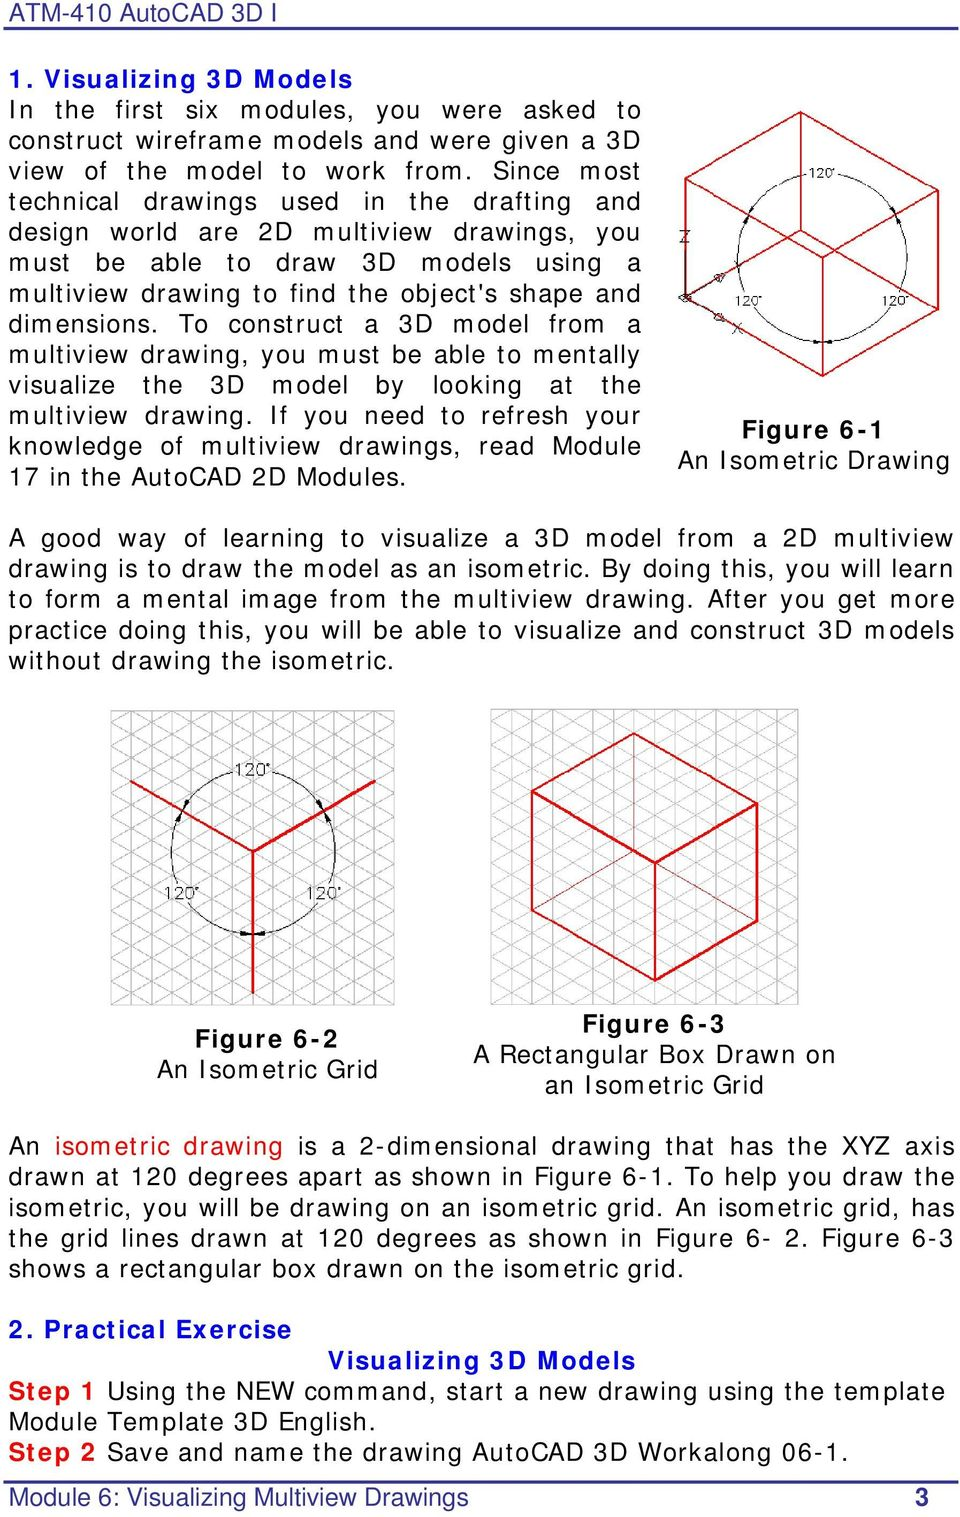 hight resolution of AutoCAD 3D I. Module 6. Visualizing Multiview Drawings. Curriculum  Development Unit PREPARED BY. August PDF Free Download